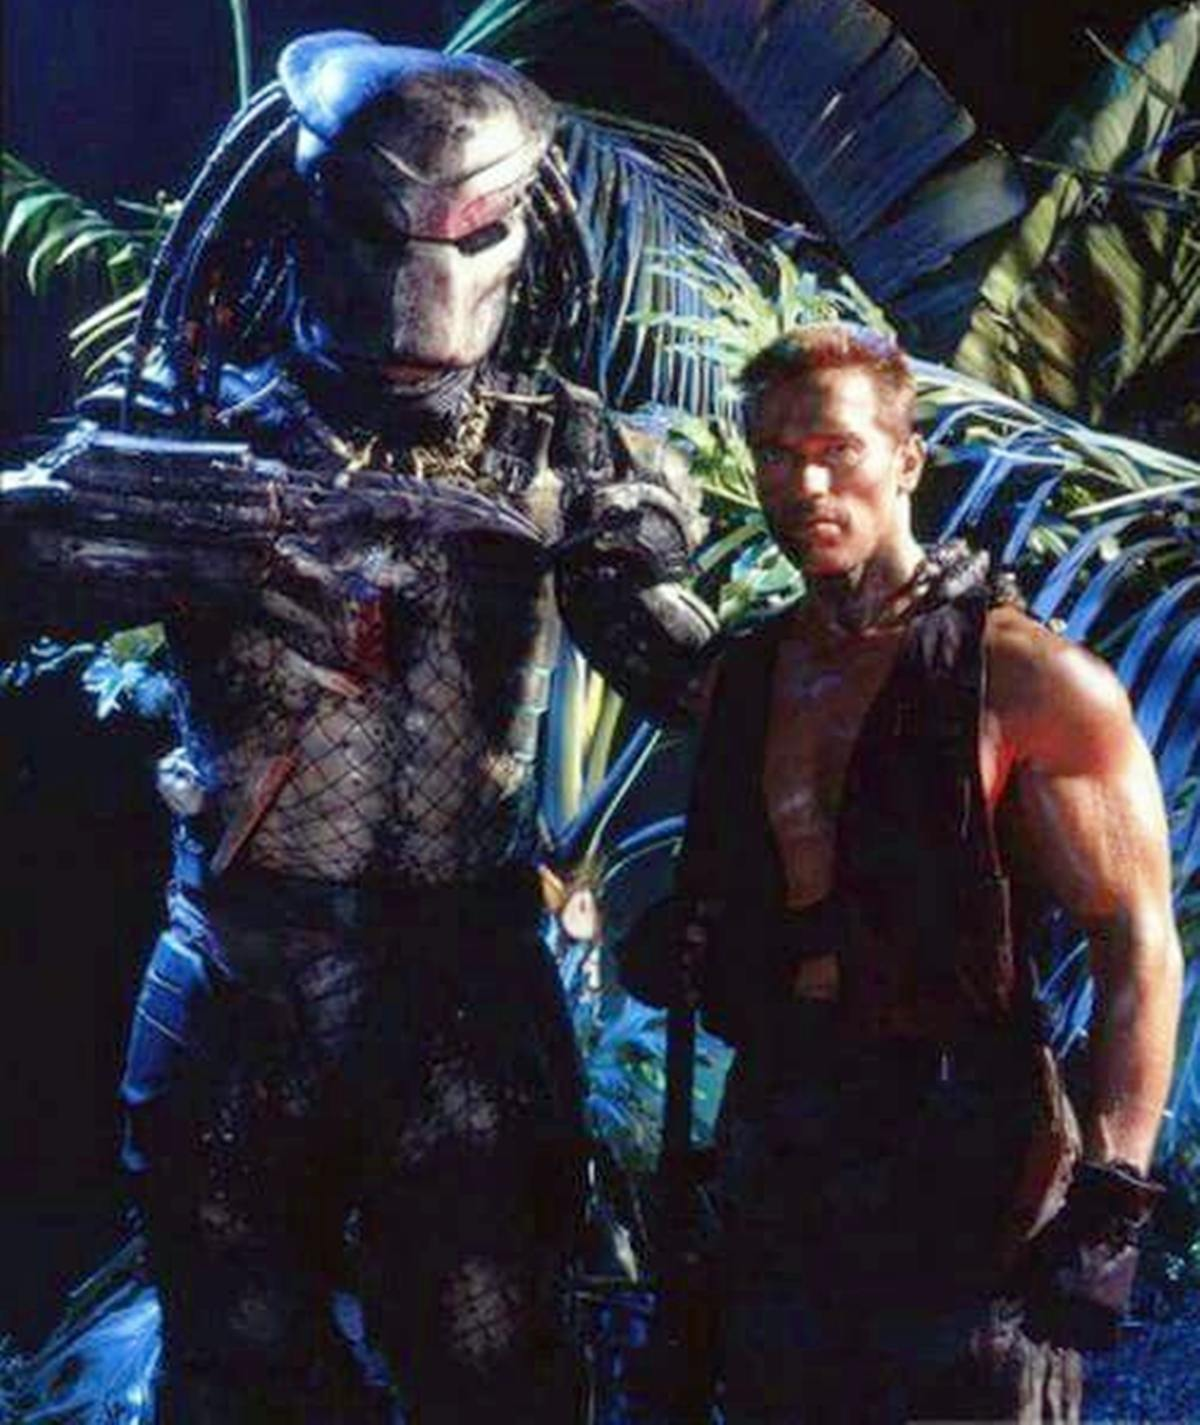 6 12 12 Things You Might Not Have Realised About Predator